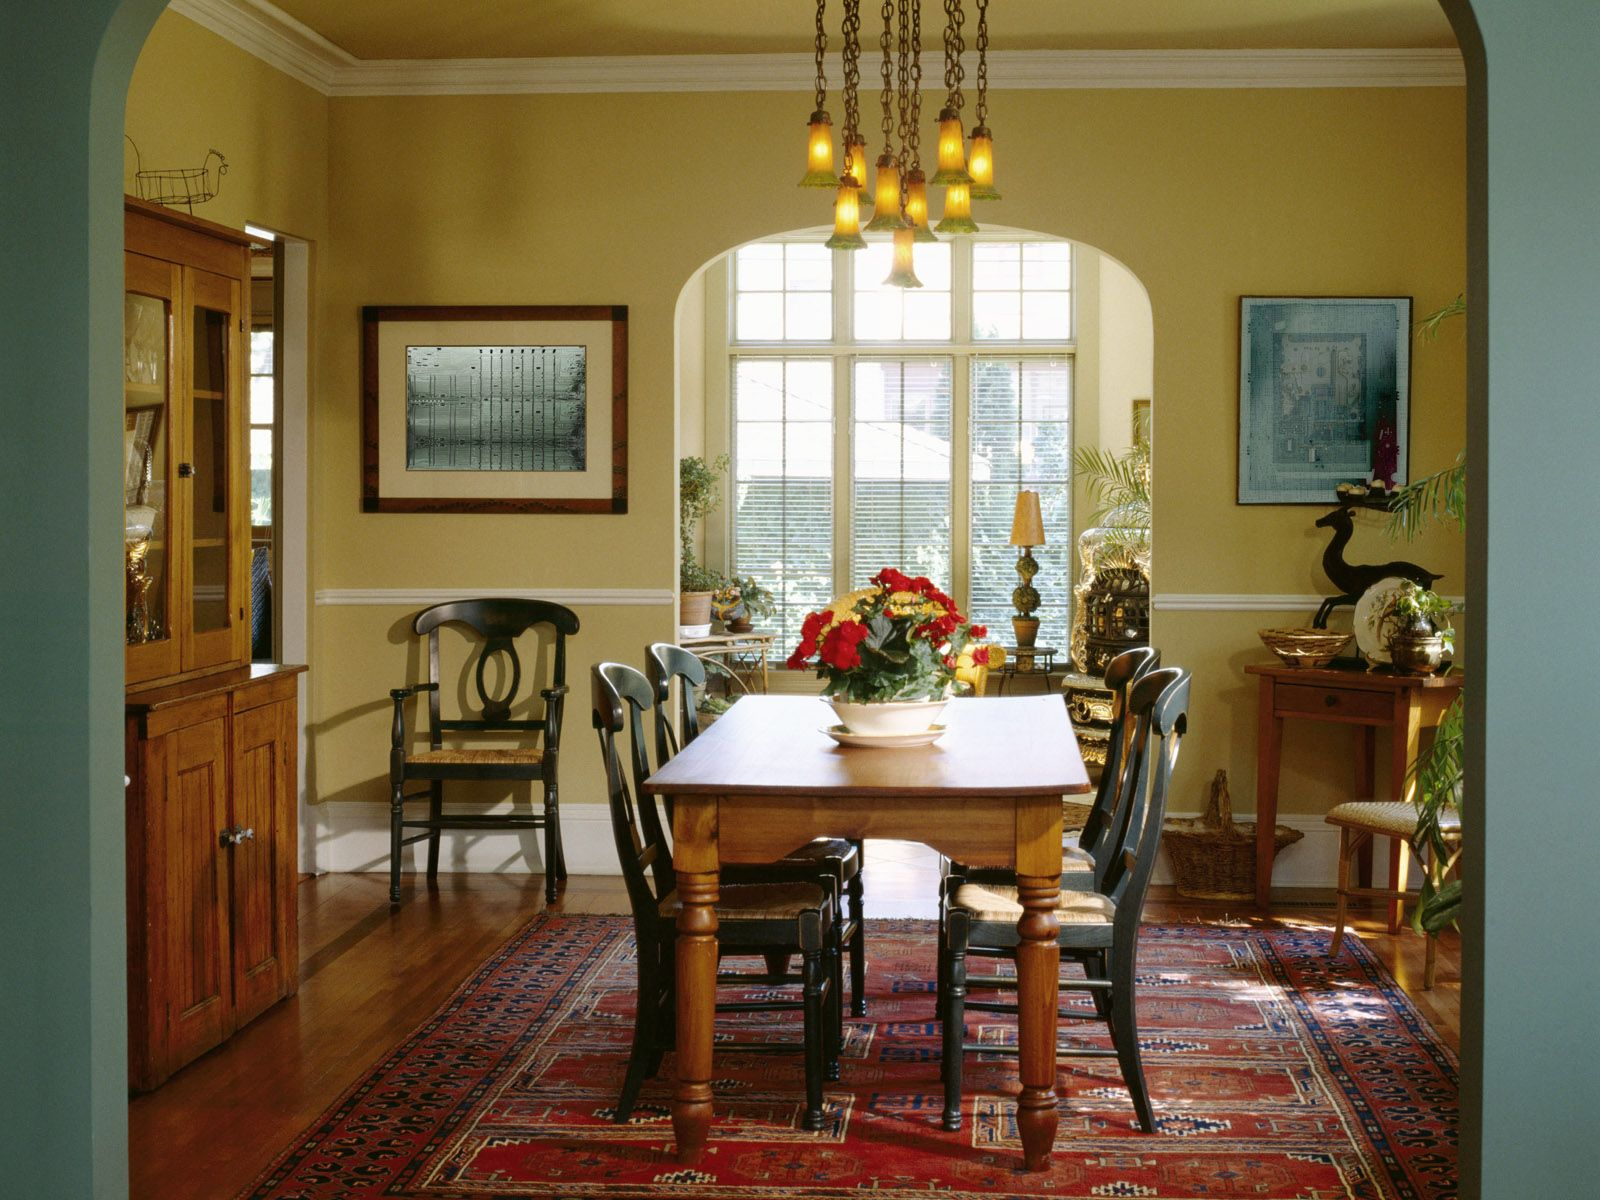 Dining Room Unique Antique Chandeliers Over Natural